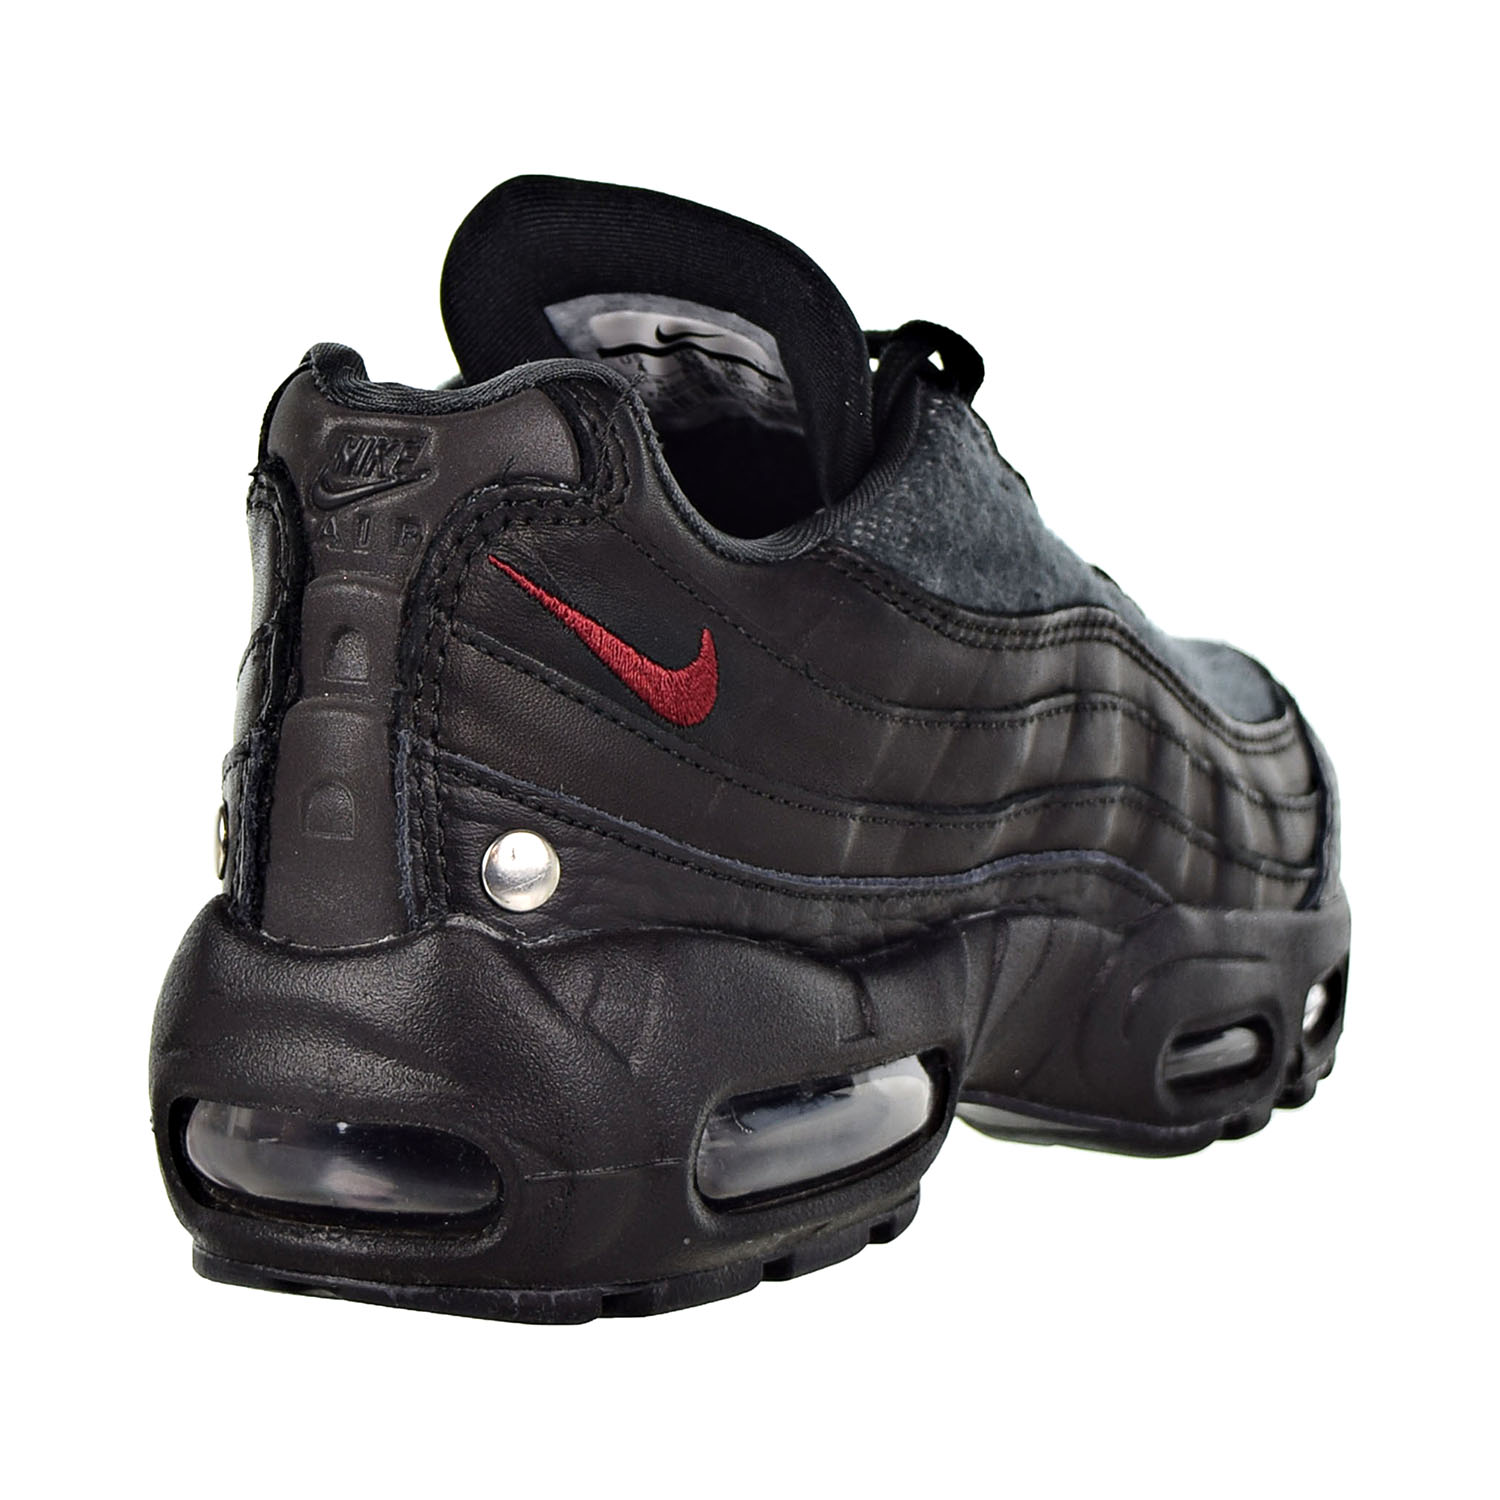 06c2547b5b30a Nike Air Max 95 NRG Men's Shoes Black/Anthracite/Team Red AT6146-001 ...